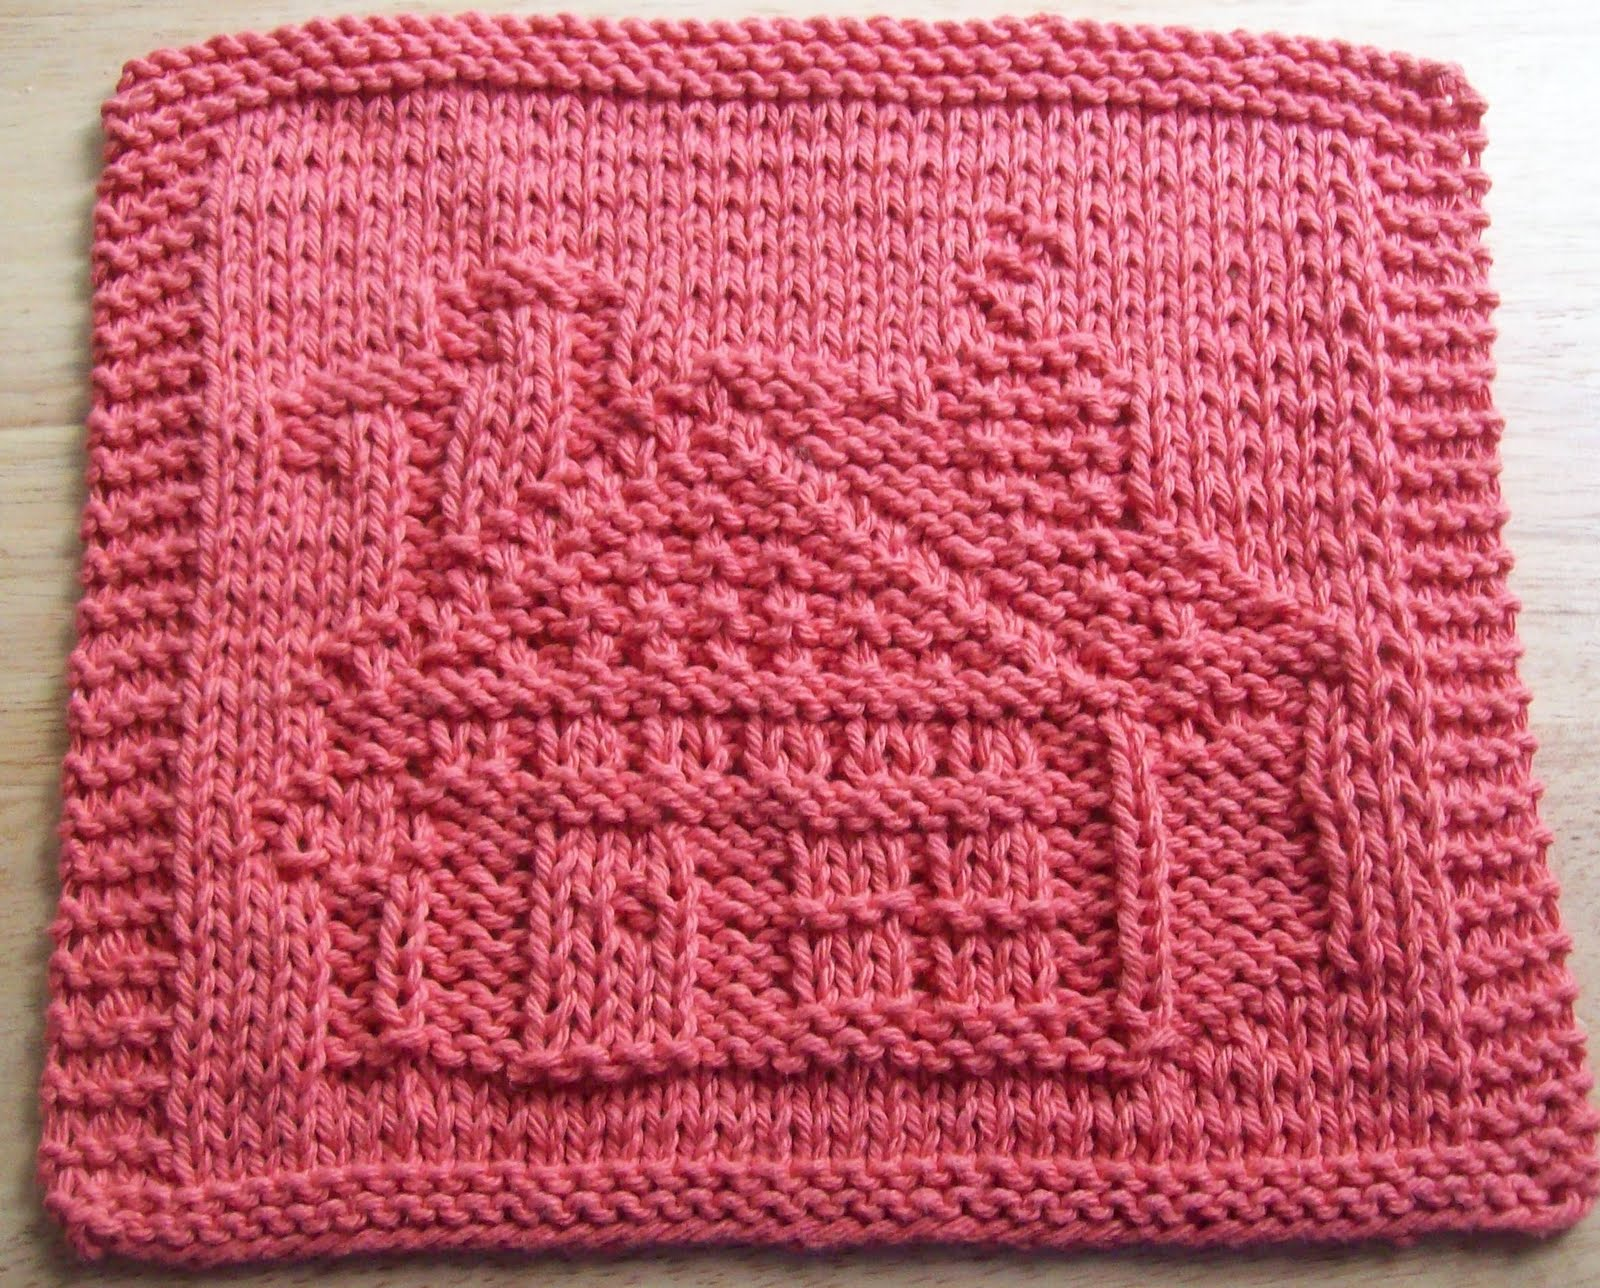 Knitting Dishcloth For Beginners : Digknitty designs gingerbread house too knit dishcloth